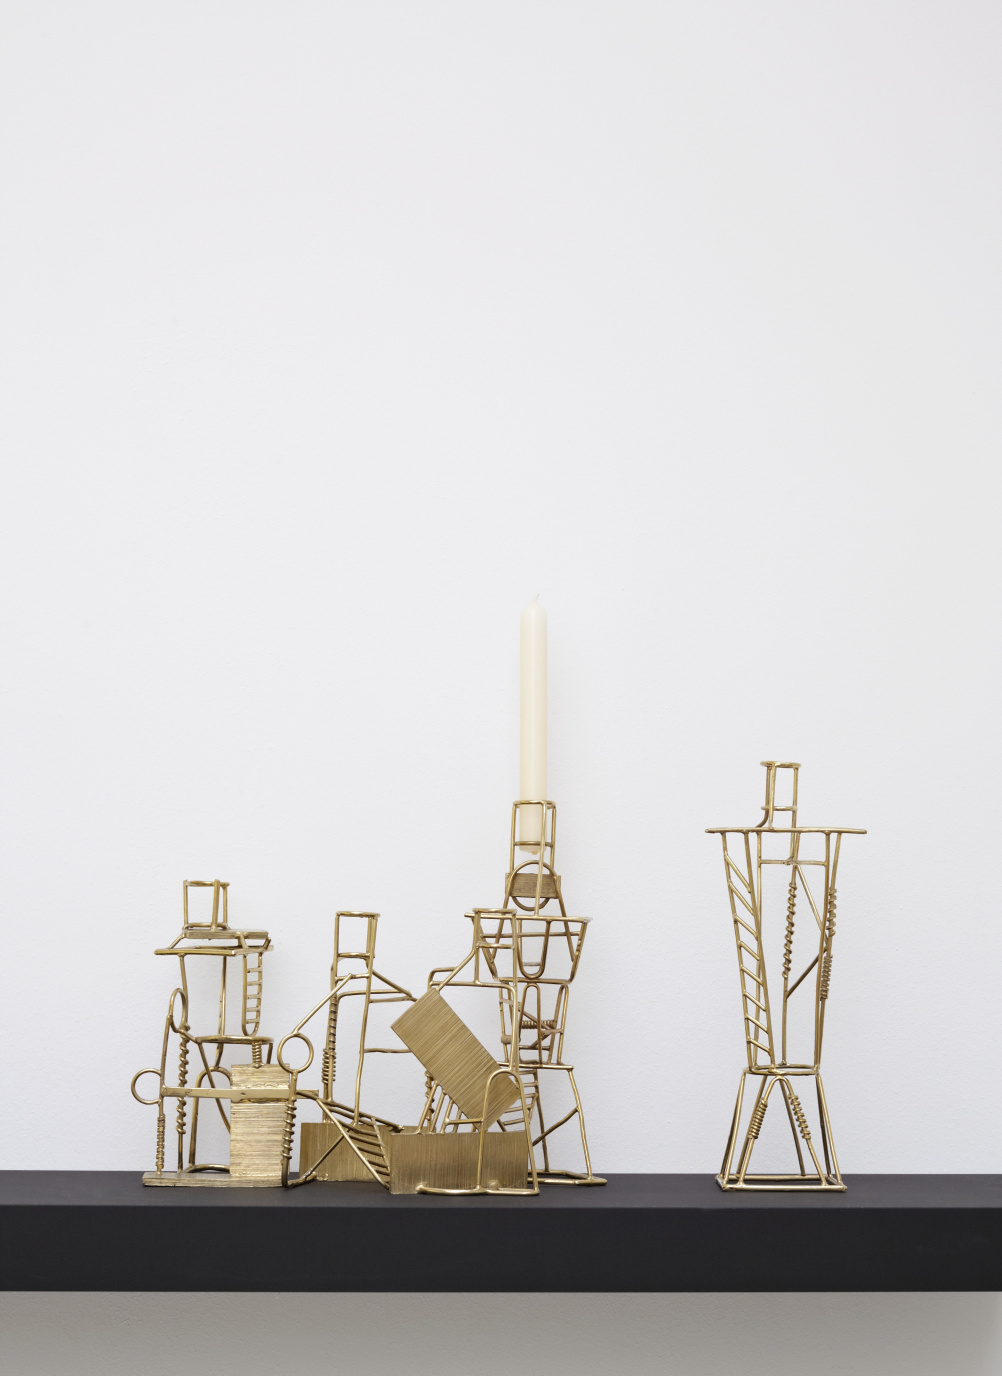 Drawn Candlesticks by Fabien Cappello, 2012